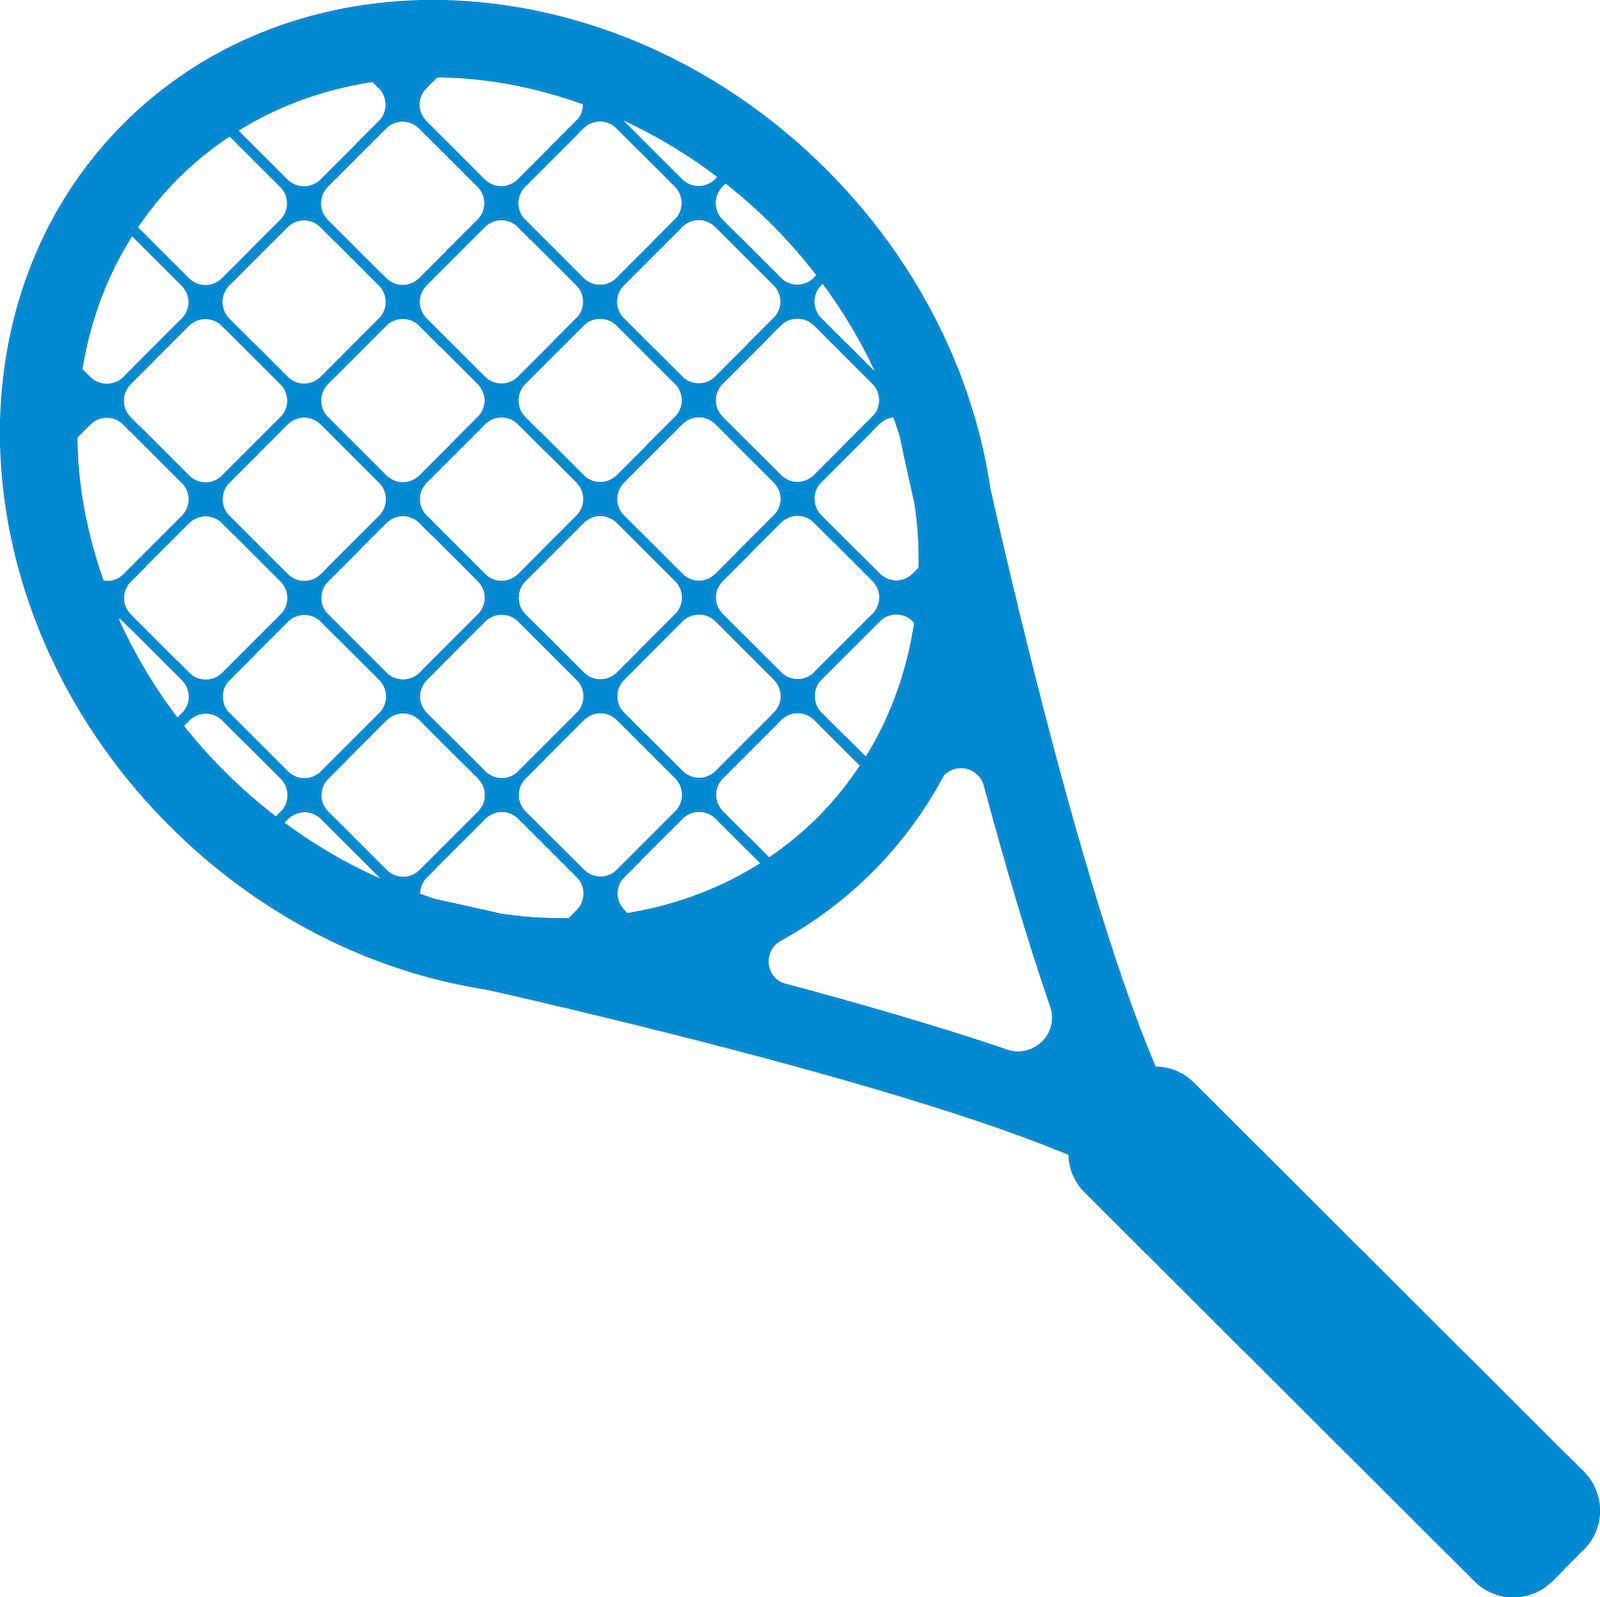 hight resolution of learn how to play pickleball